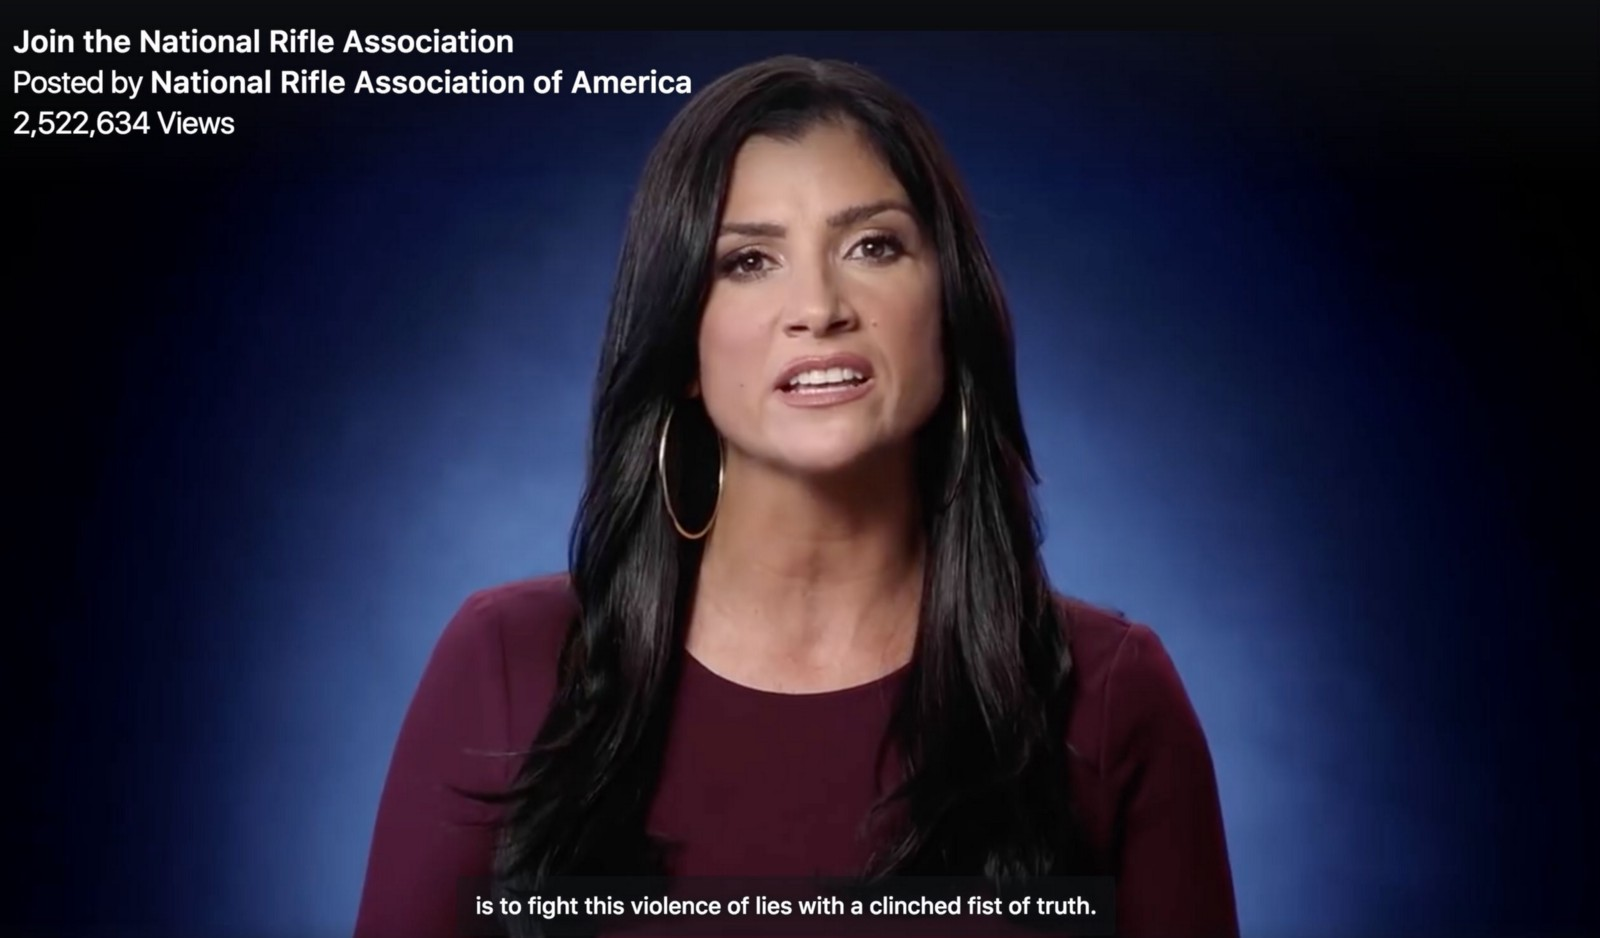 NRA defends 'closed fist of truth' ad